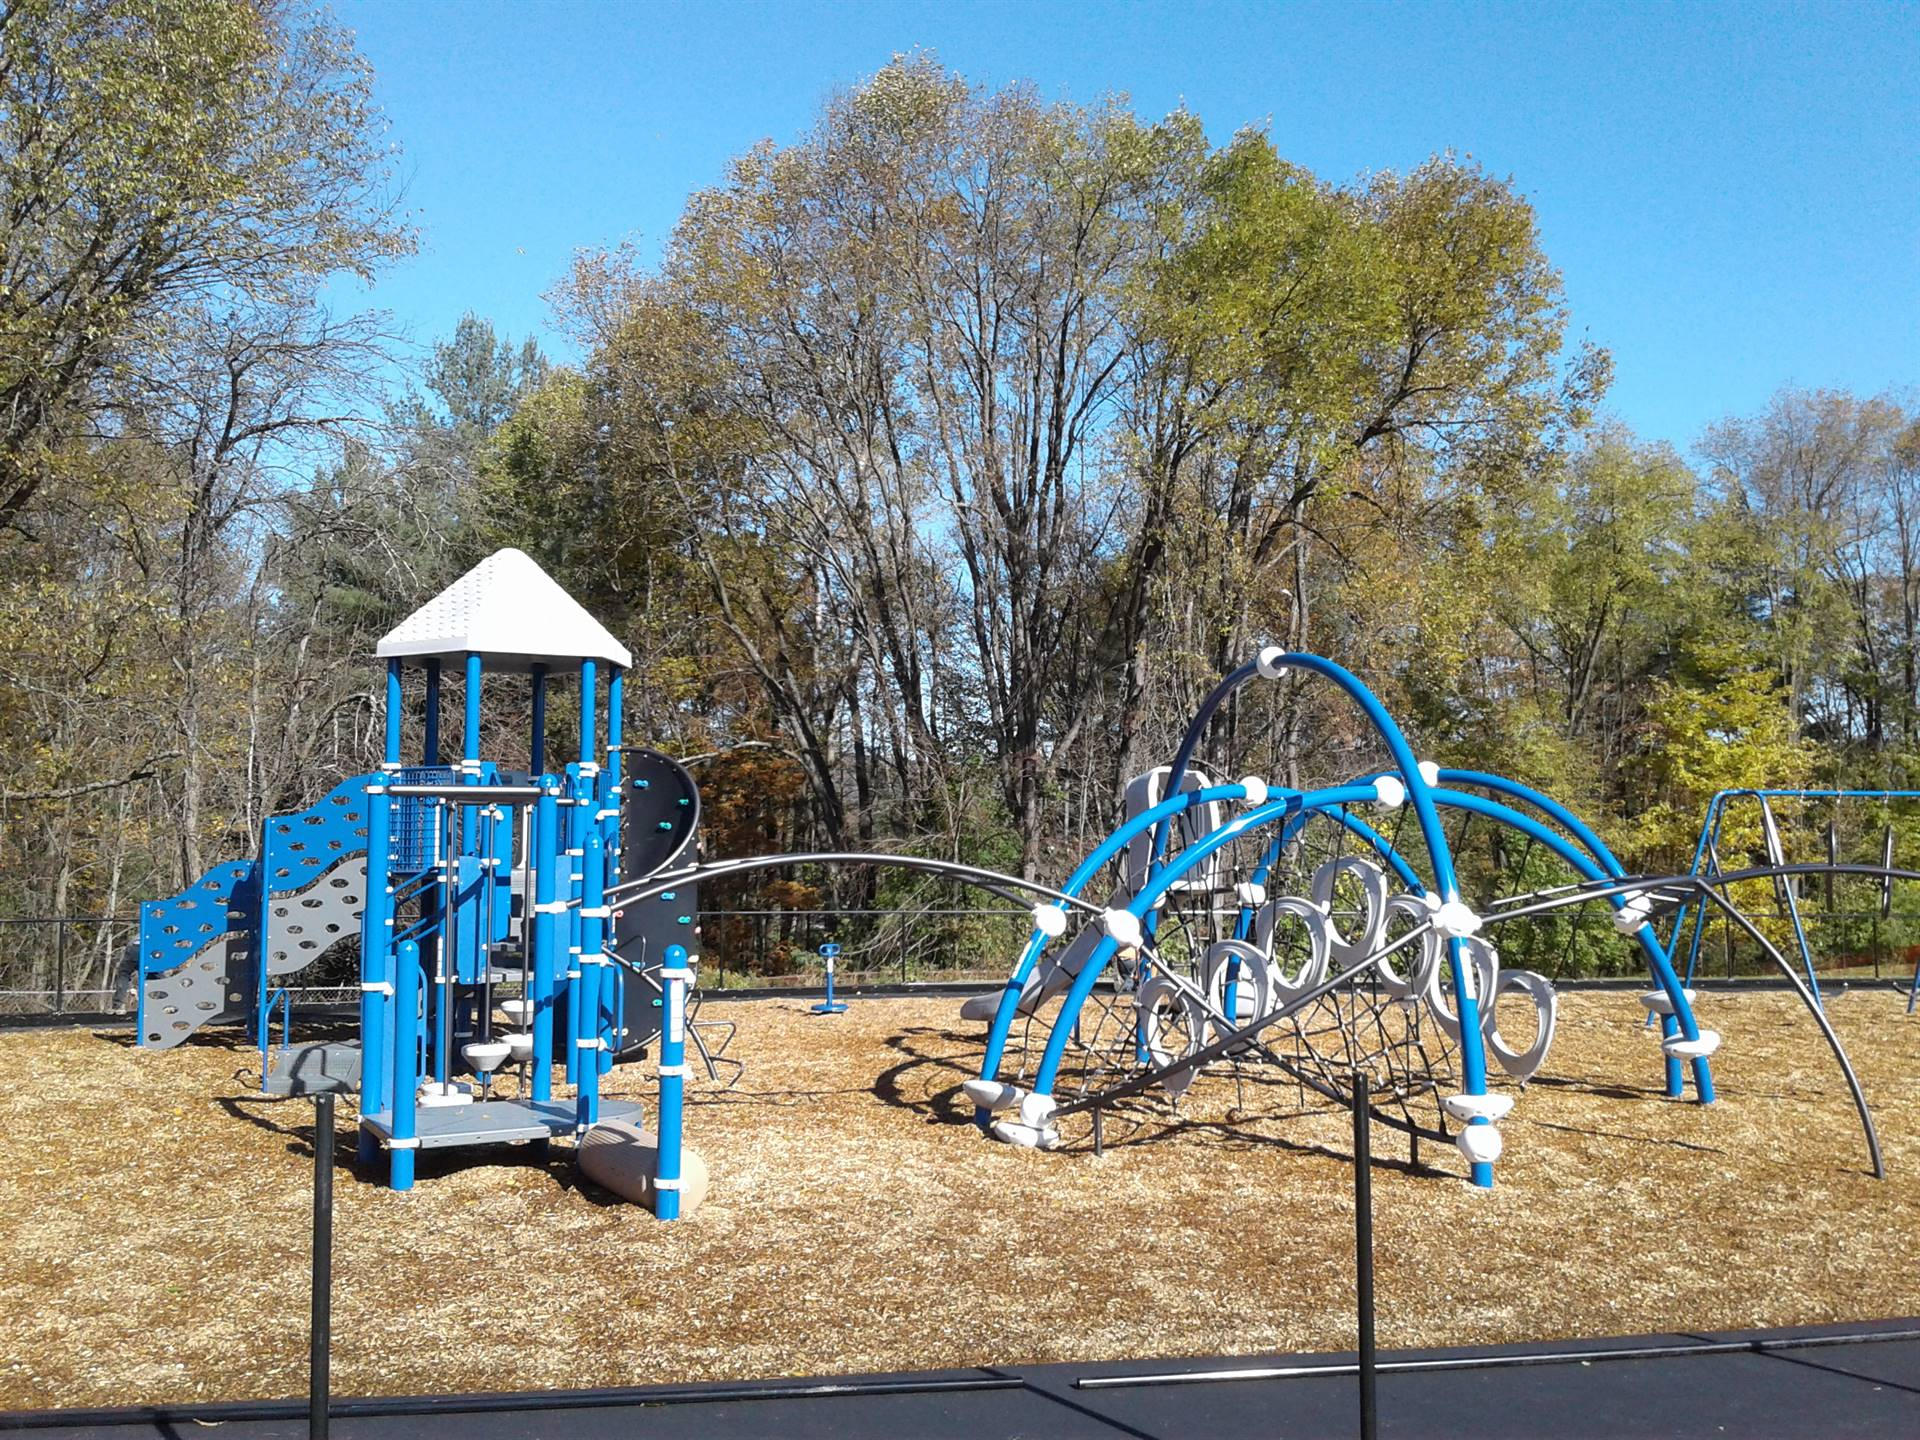 New Greenlawn Playground - Spiderweb